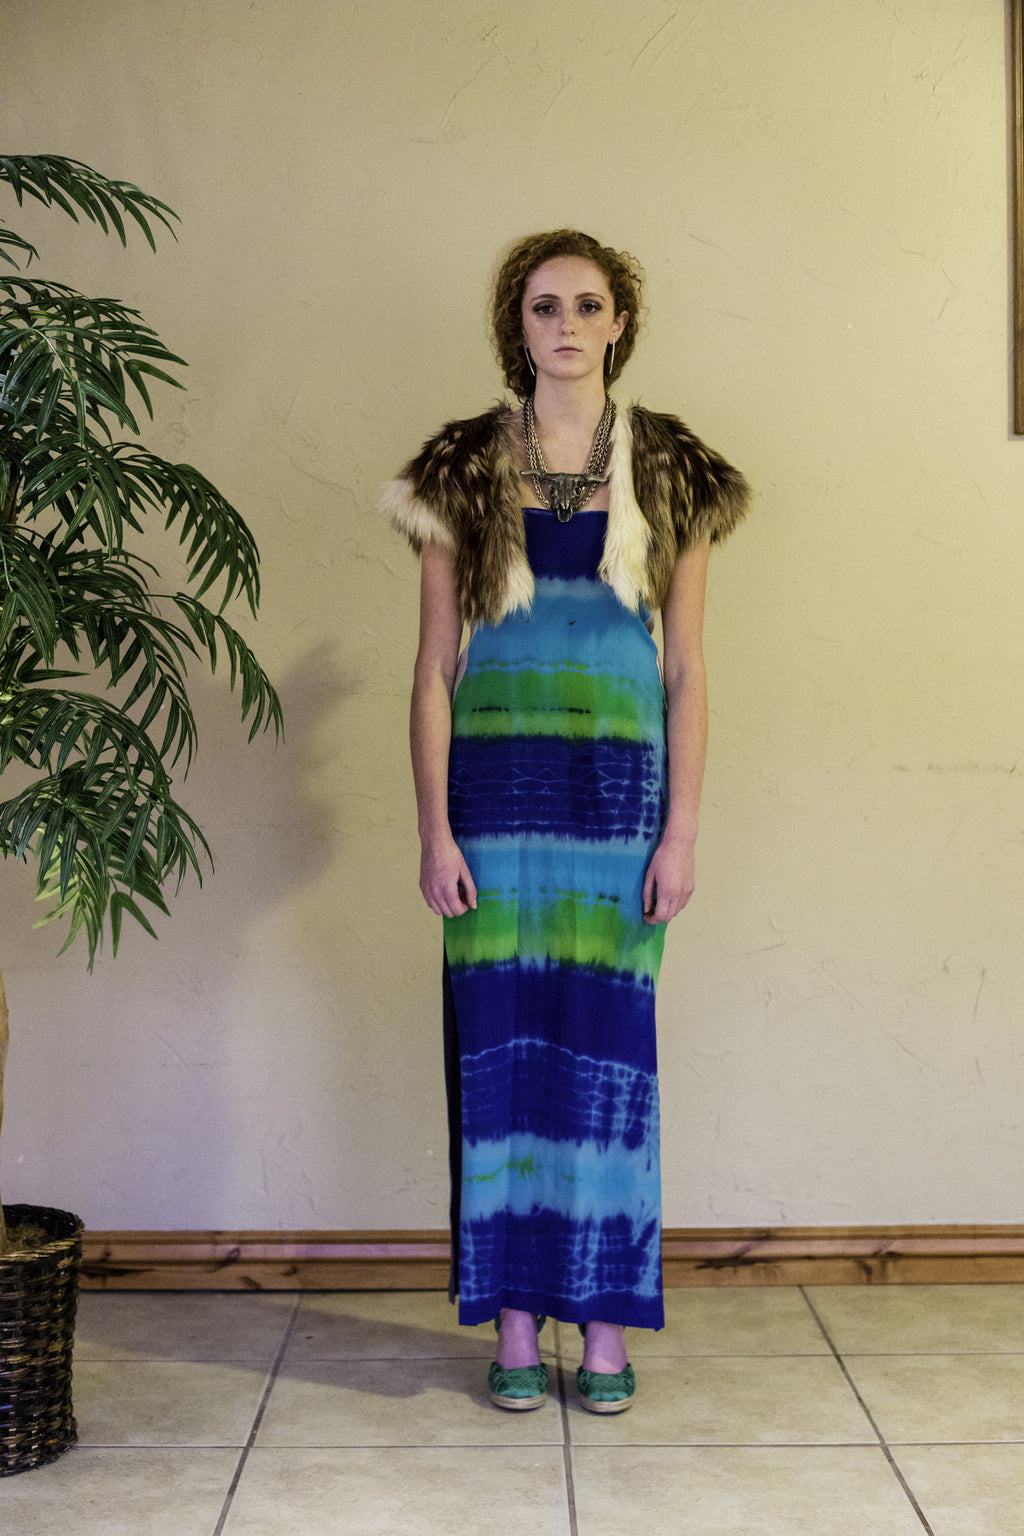 BLUE AND GREEN PRINT HAND-TIE&DYE LONG DRESS | HIGH-WAIST SKIRT